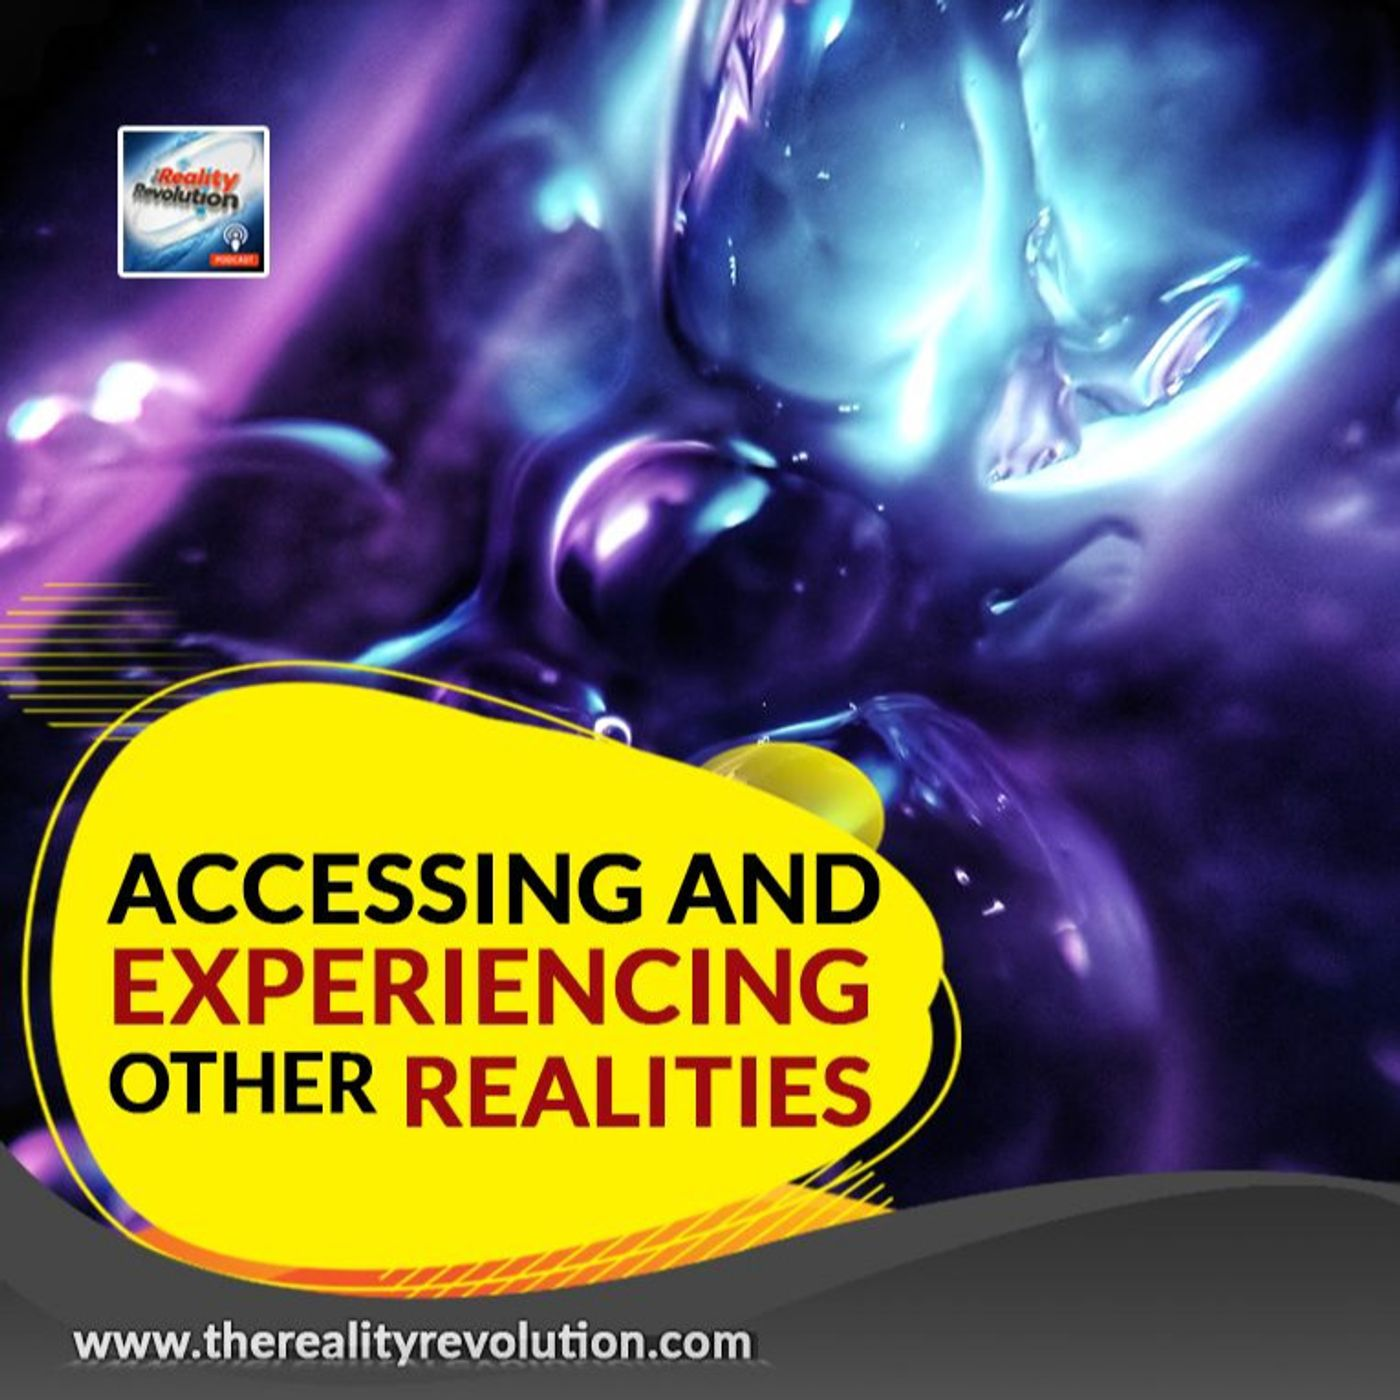 Accessing And Experiencing Other Realities